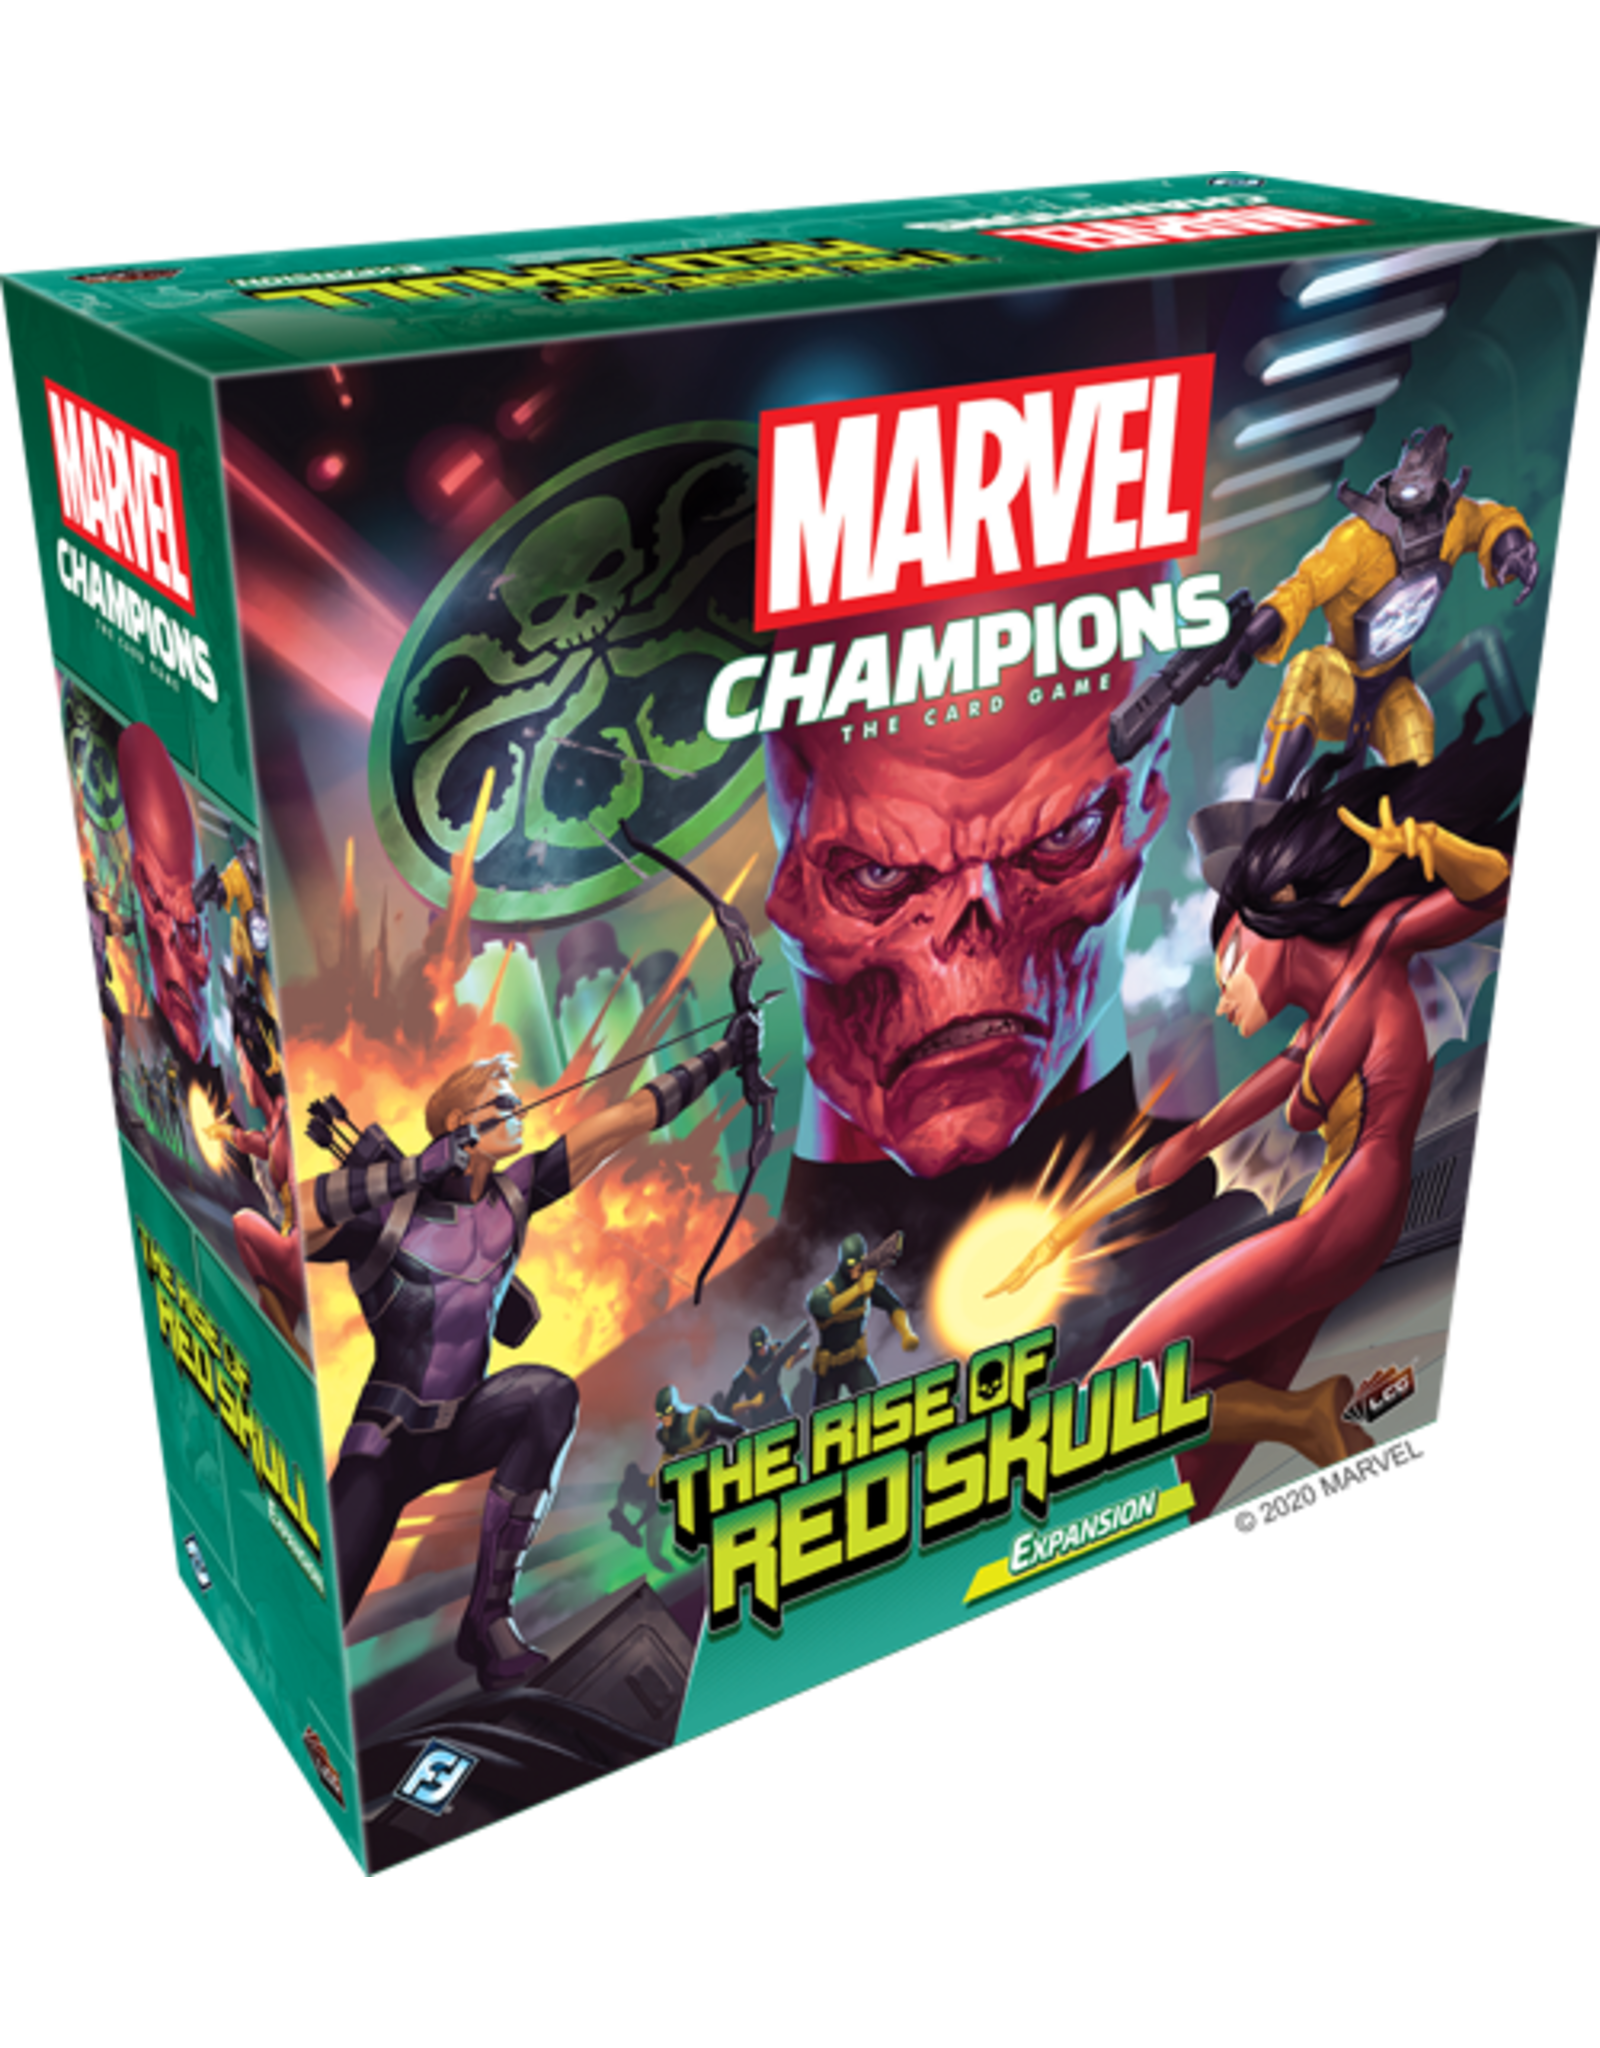 Marvel Champions The Rise of the Red Skull Expansion